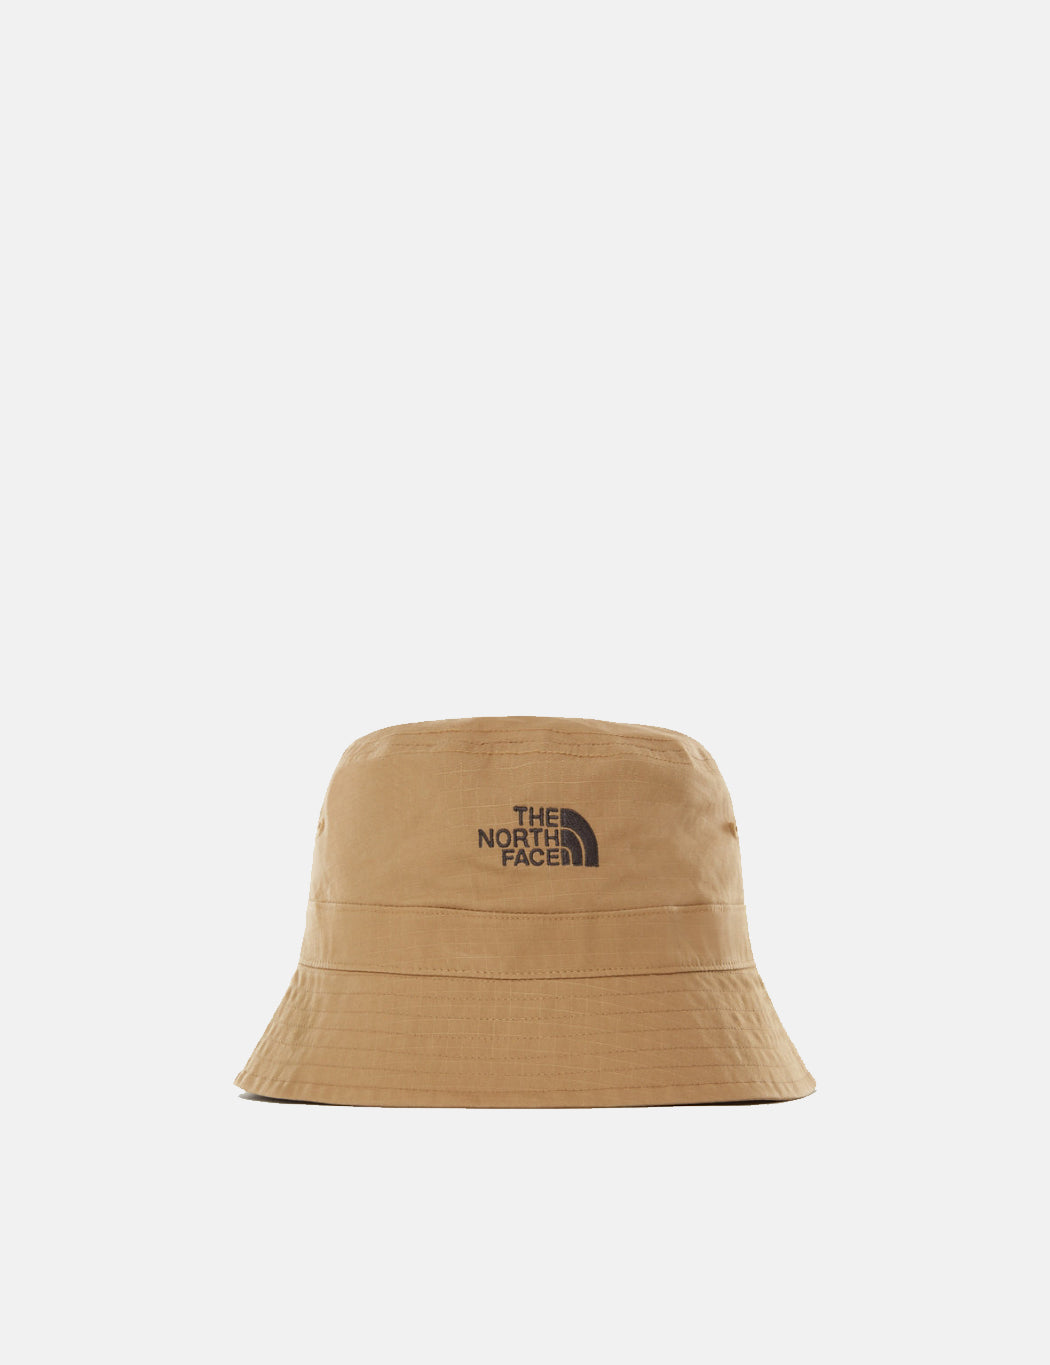 40199db3 North Face Cotton Bucket Hat - Kelp Tan | URBAN EXCESS.